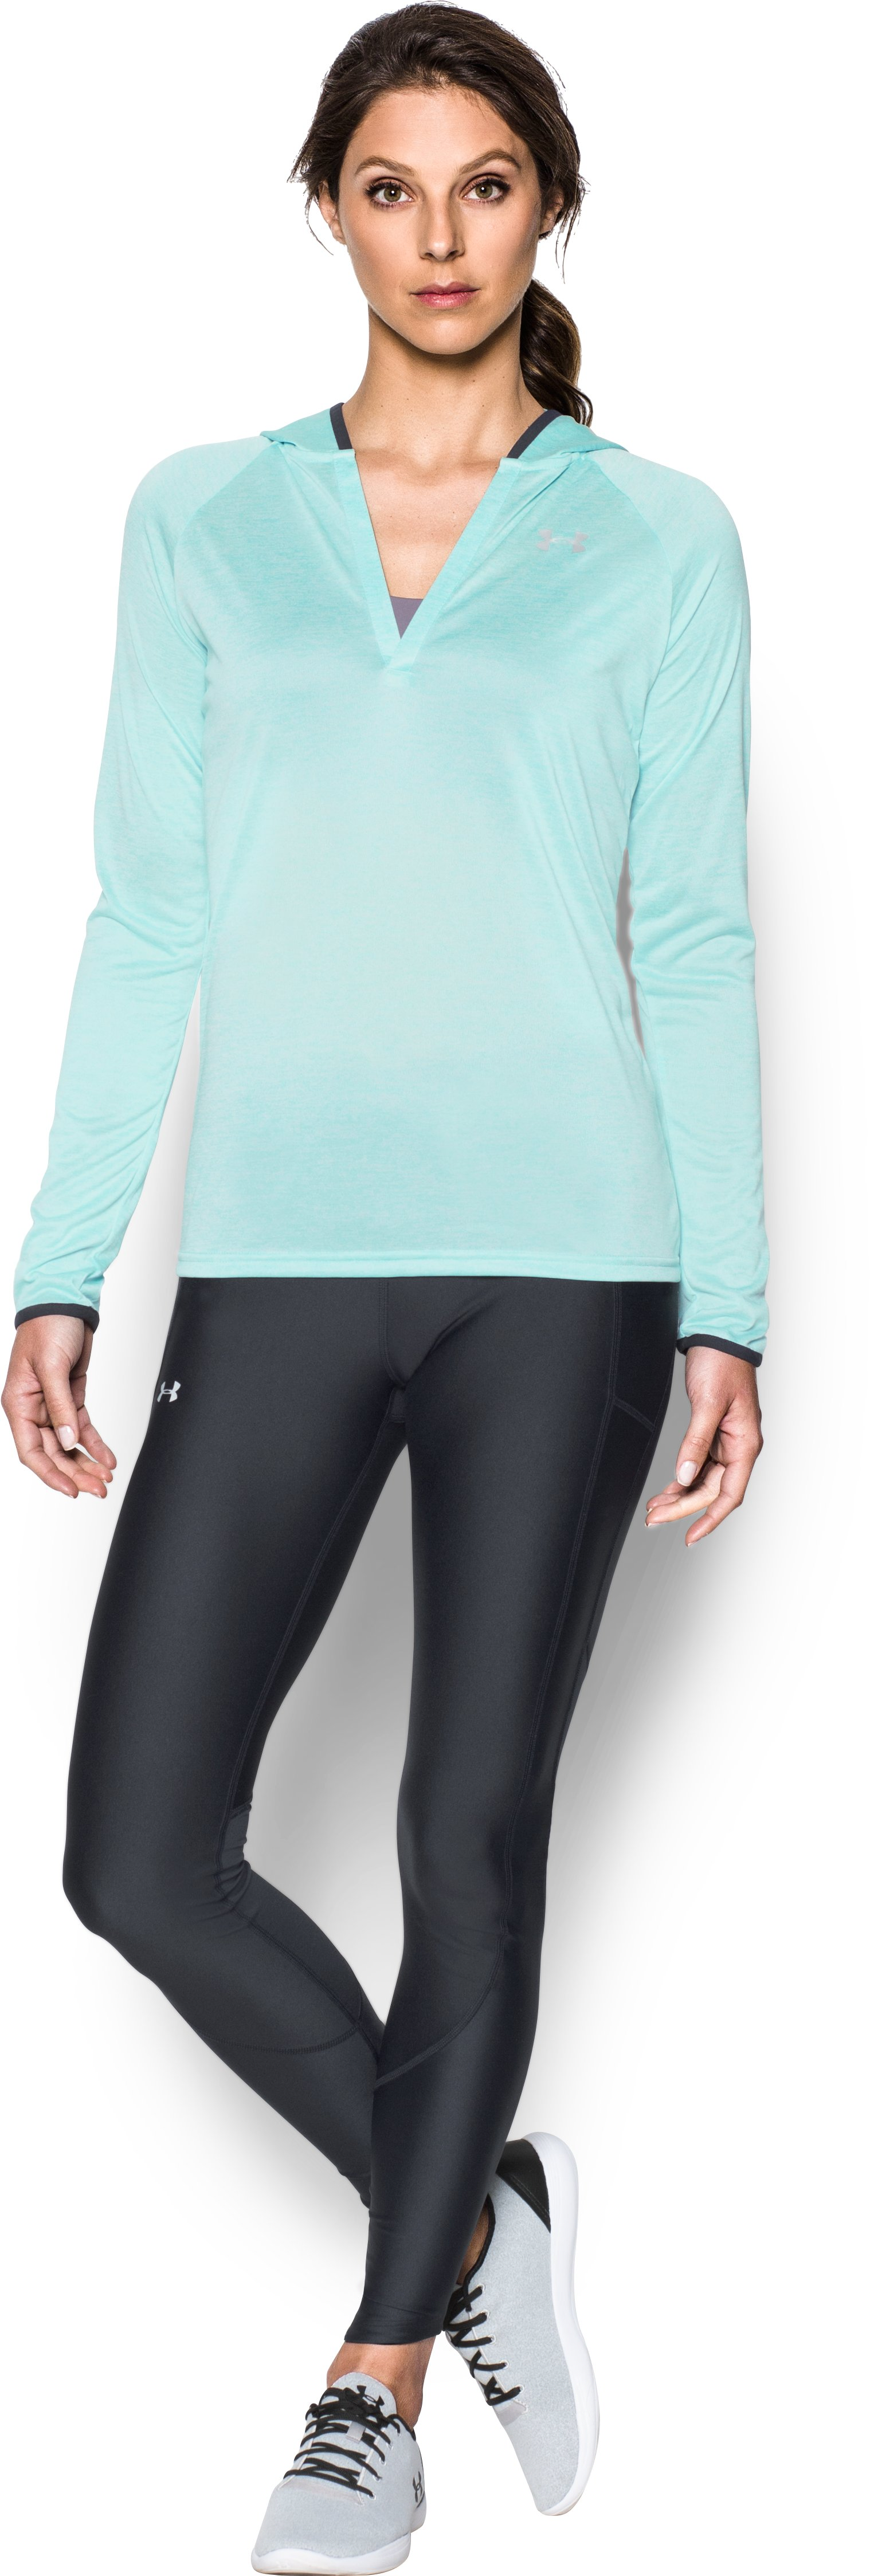 Women's UA Twisted Tech™ Long Sleeve Hoodie, BLUE INFINITY, zoomed image